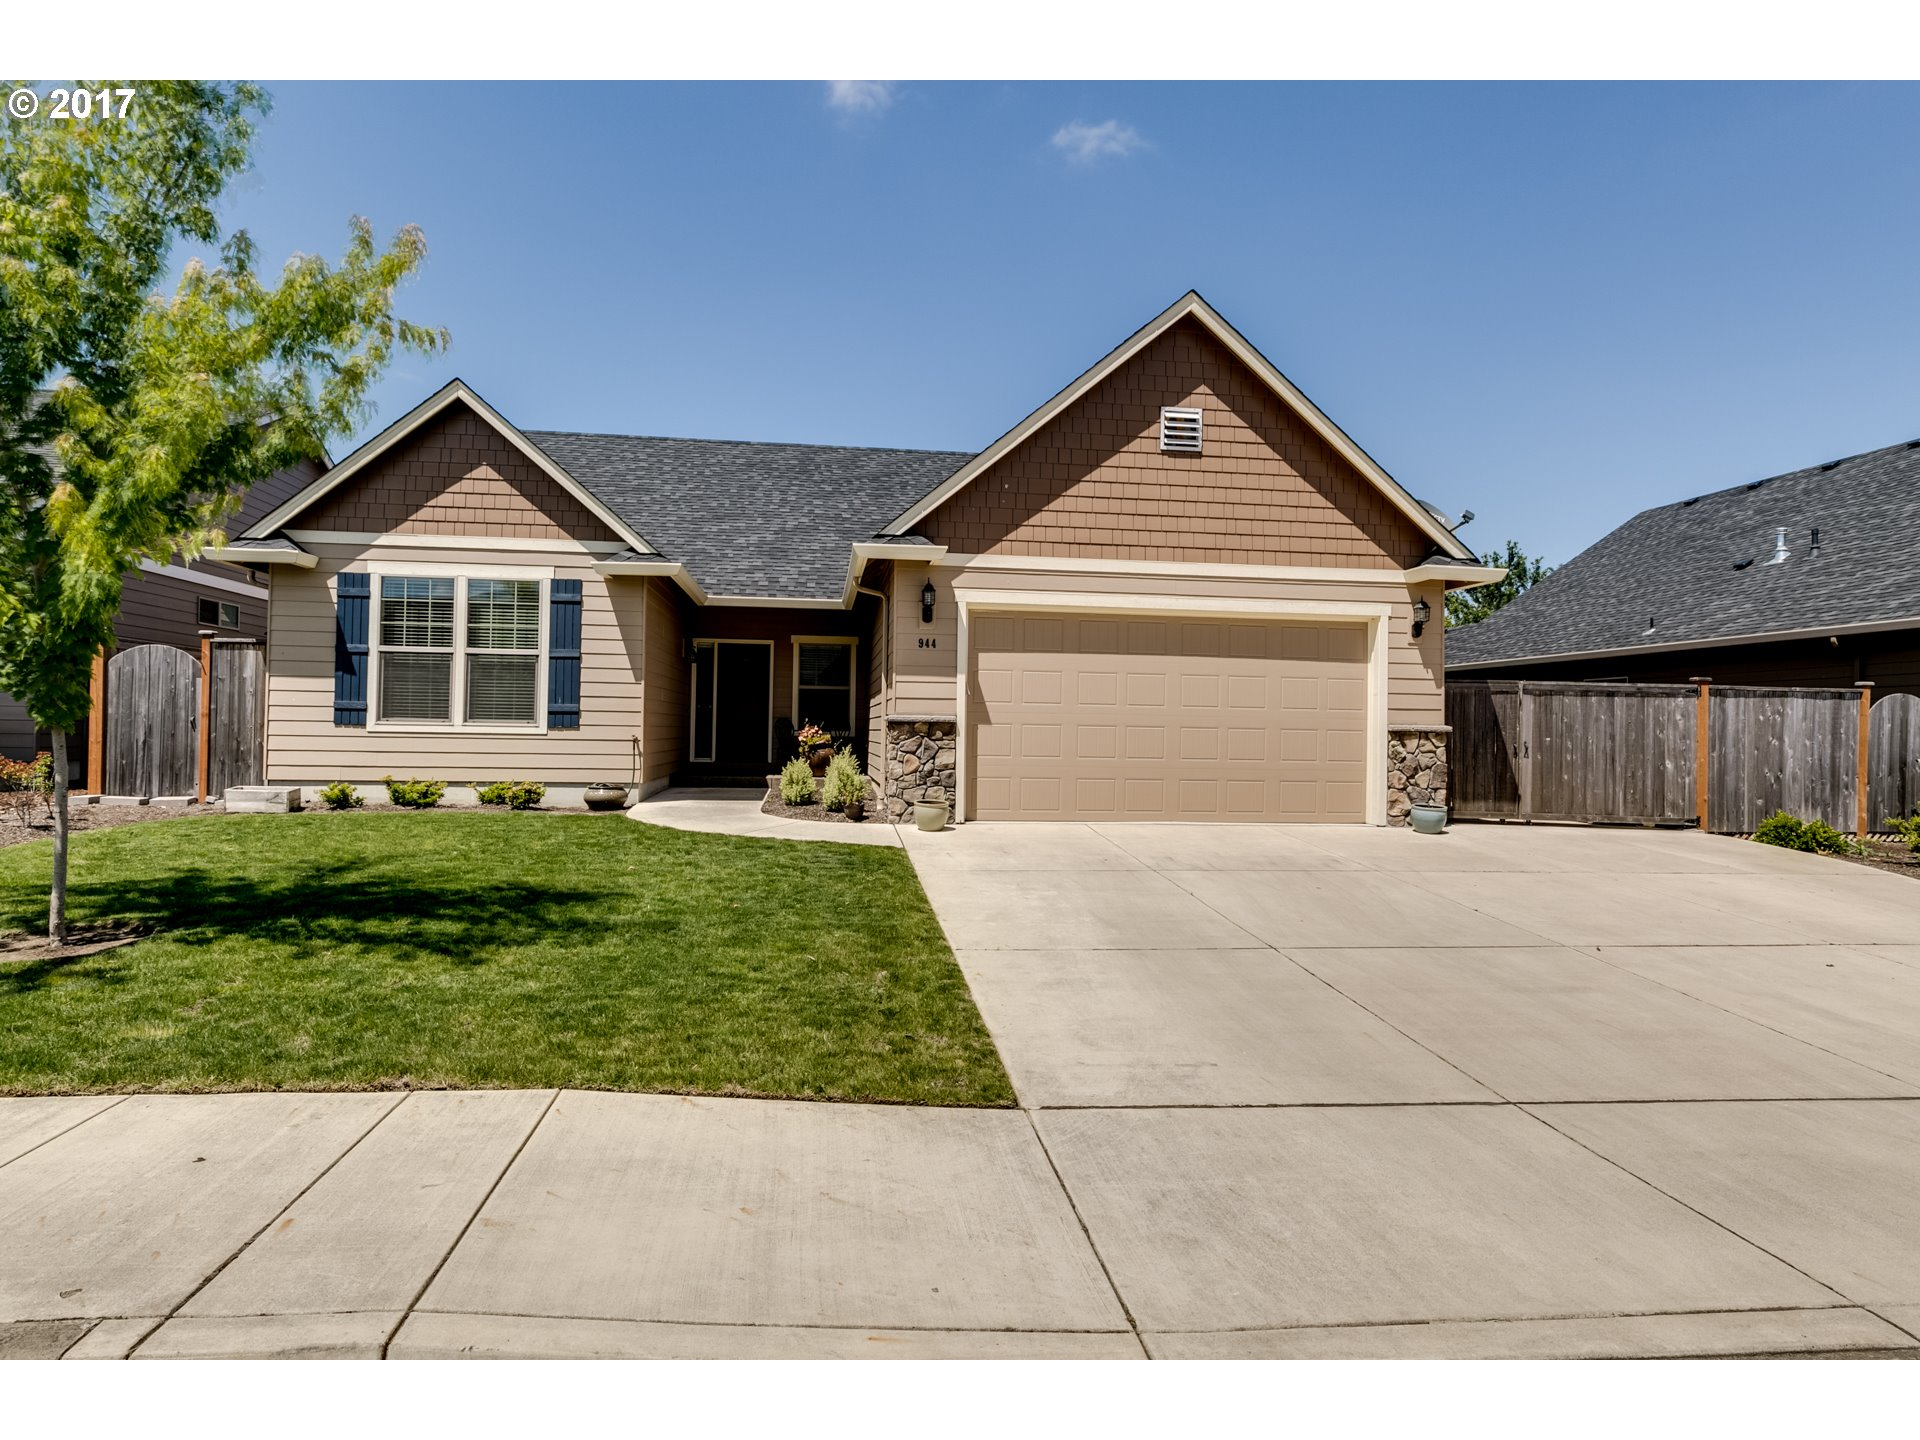 944 KAYLEE AVE, Junction City, OR 97448